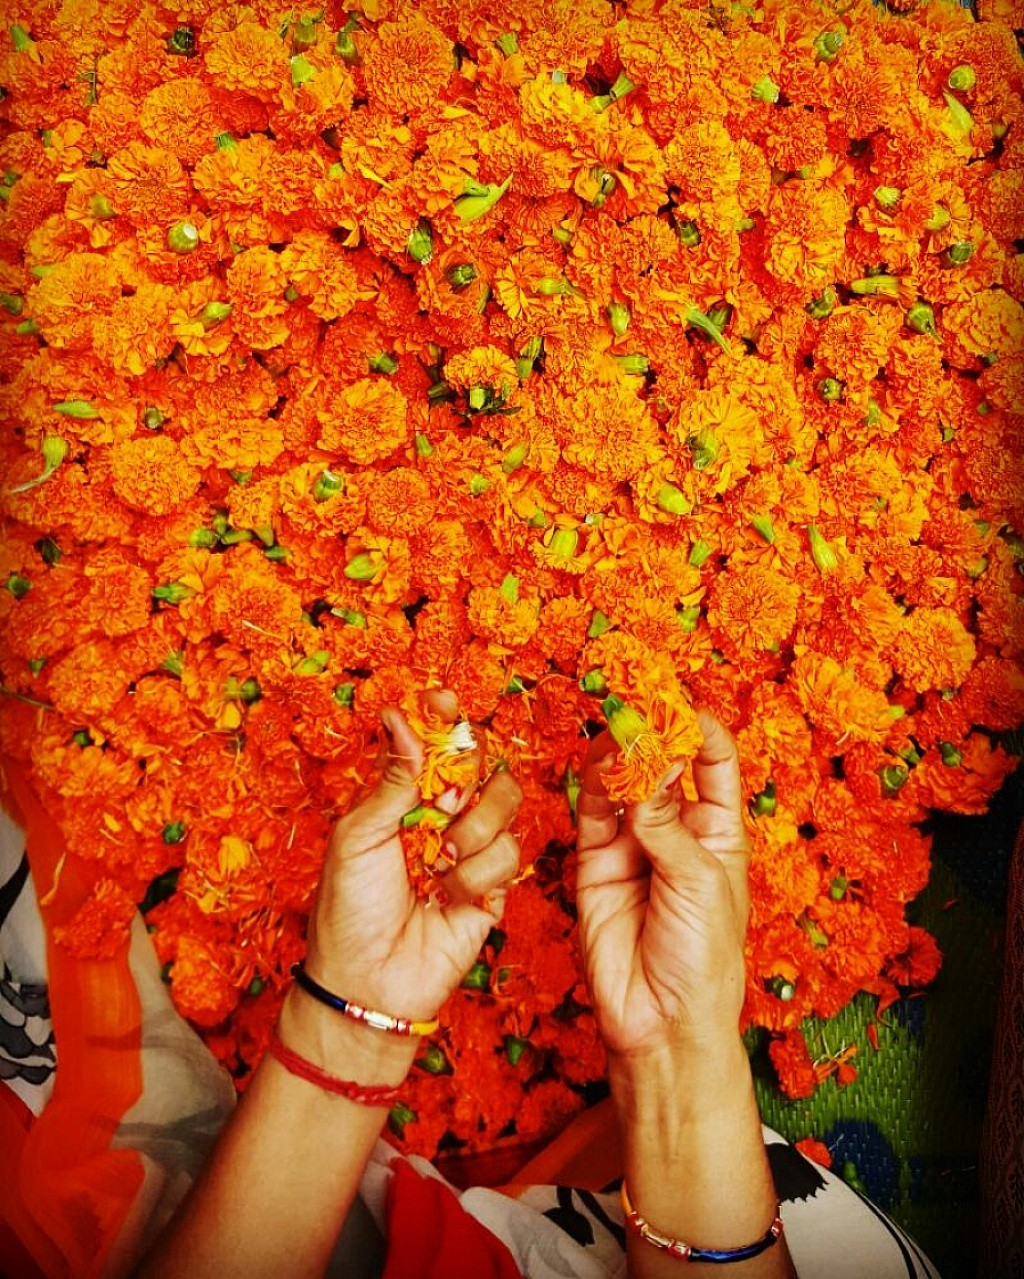 30 Photos That Proves Orange Color Is The Most Beautiful